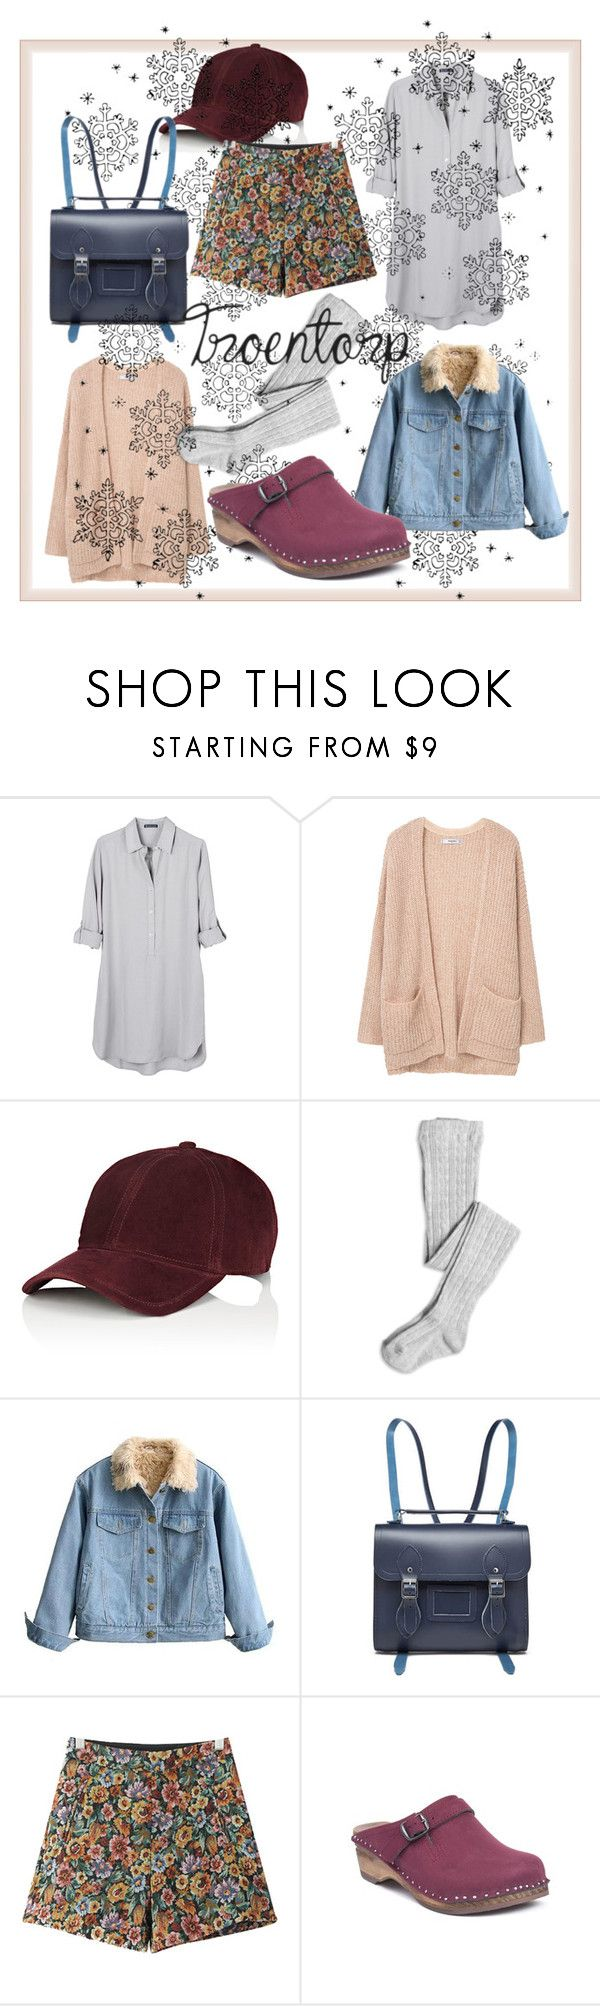 """""""Holiday spirit"""" by troentorp ❤ liked on Polyvore featuring United by Blue, MANGO, rag & bone, The Cambridge Satchel Company, Chicnova Fashion and Troentorp"""